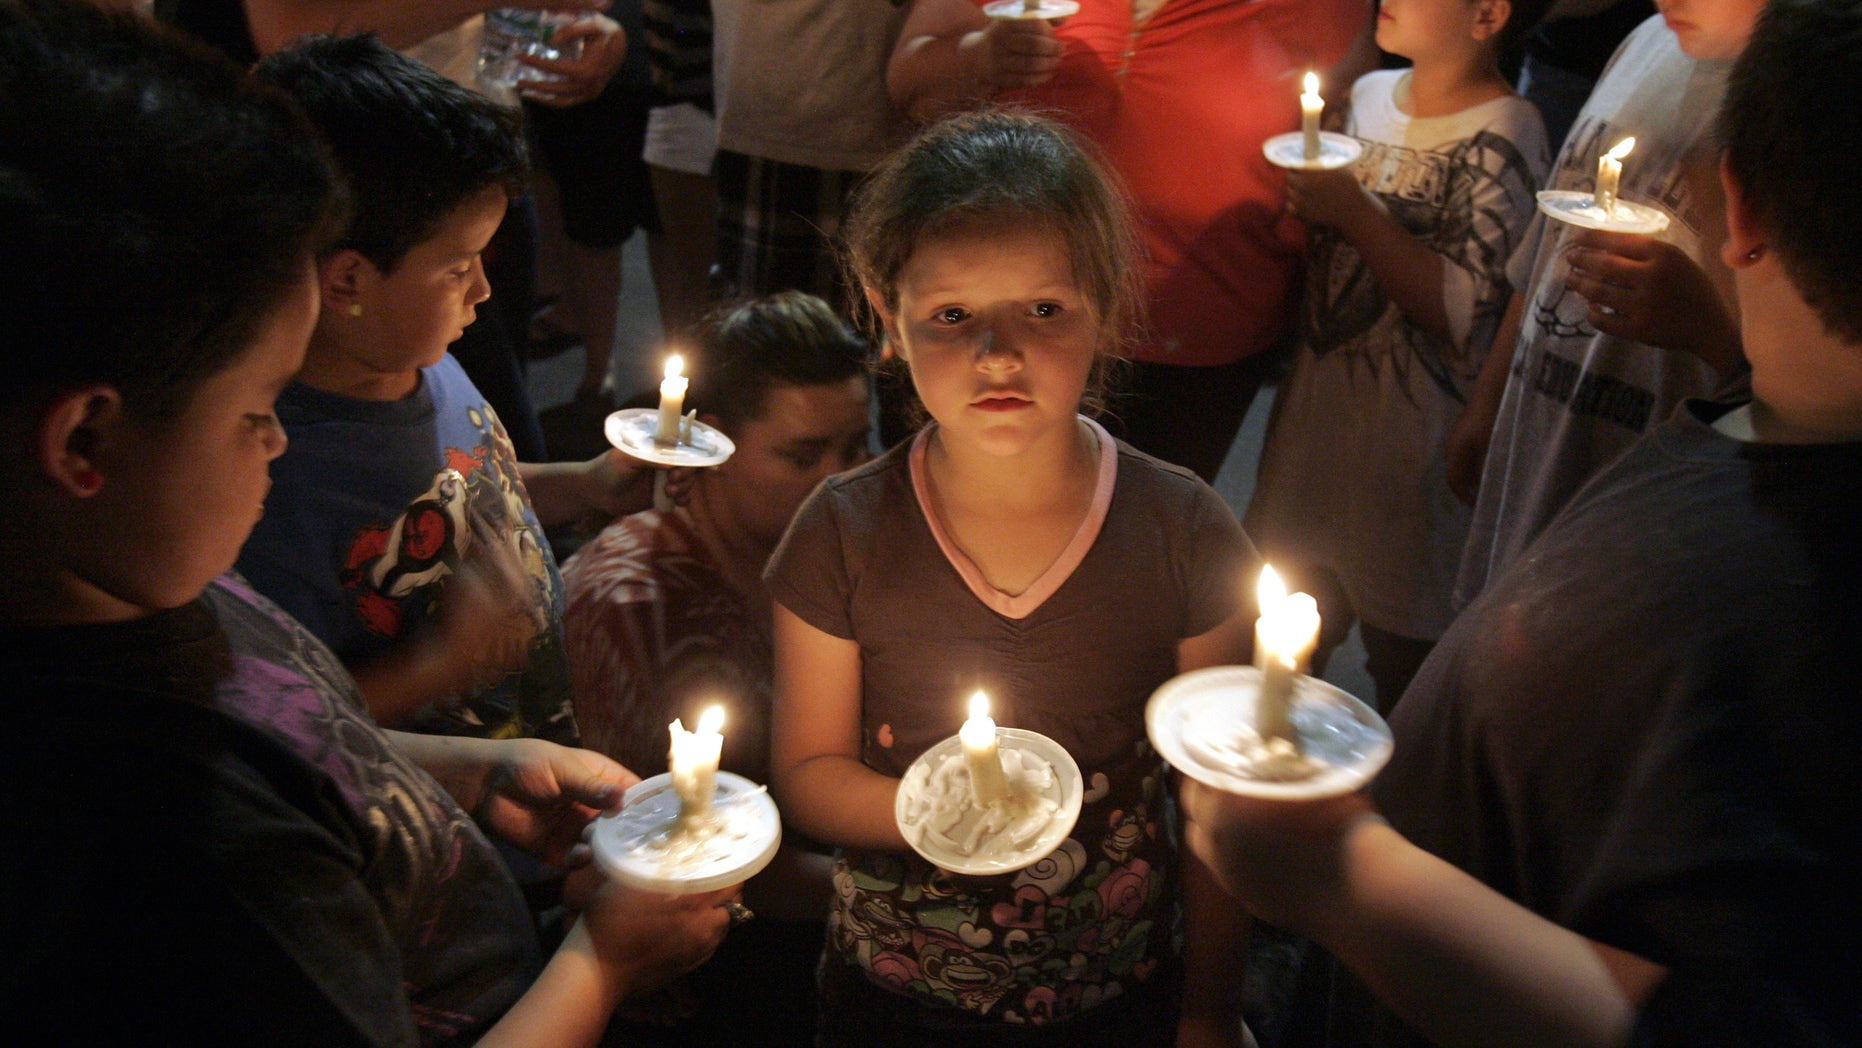 April 22: Children with their parents light and hold candles at a vigil in the parking lot near a police command post in Tucson, Ariz., in honor of the missing 6-year-old Isabel Celis.